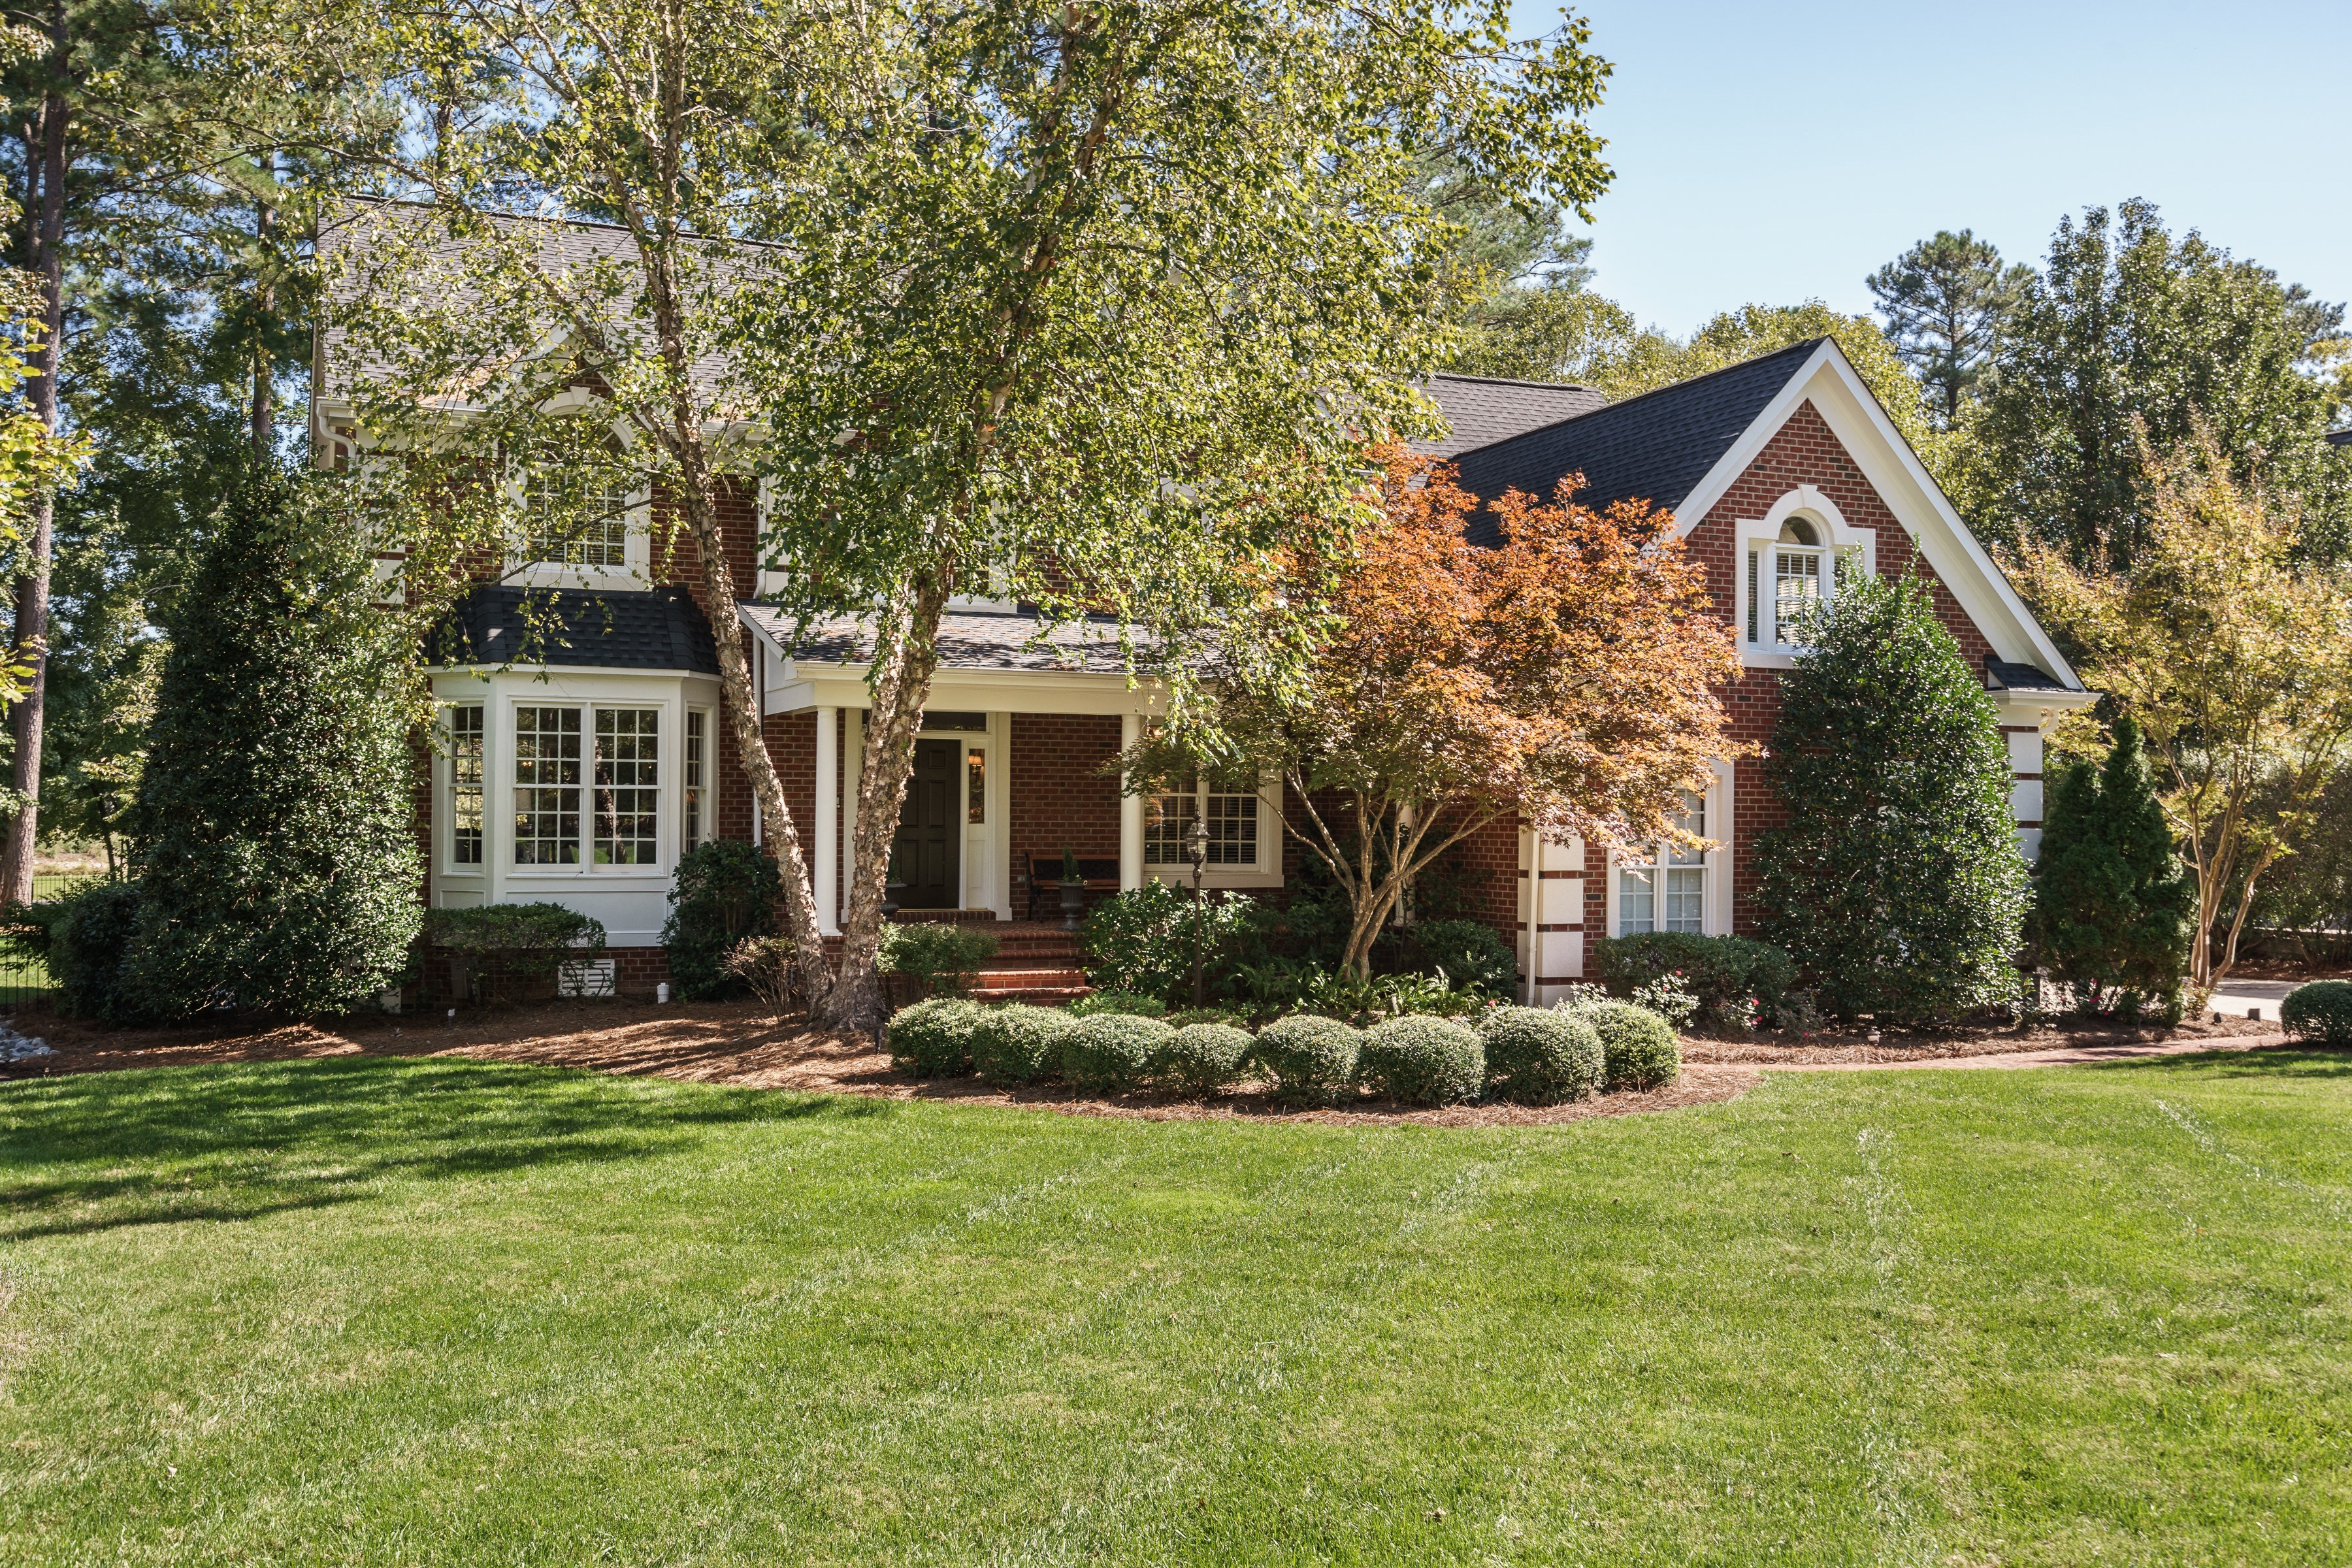 Single Family Home for Sale at Preston Country Club 104 Fairway Valley Court Cary, North Carolina, 27513 United StatesIn/Around: Raleigh, Durham, Chapel Hill